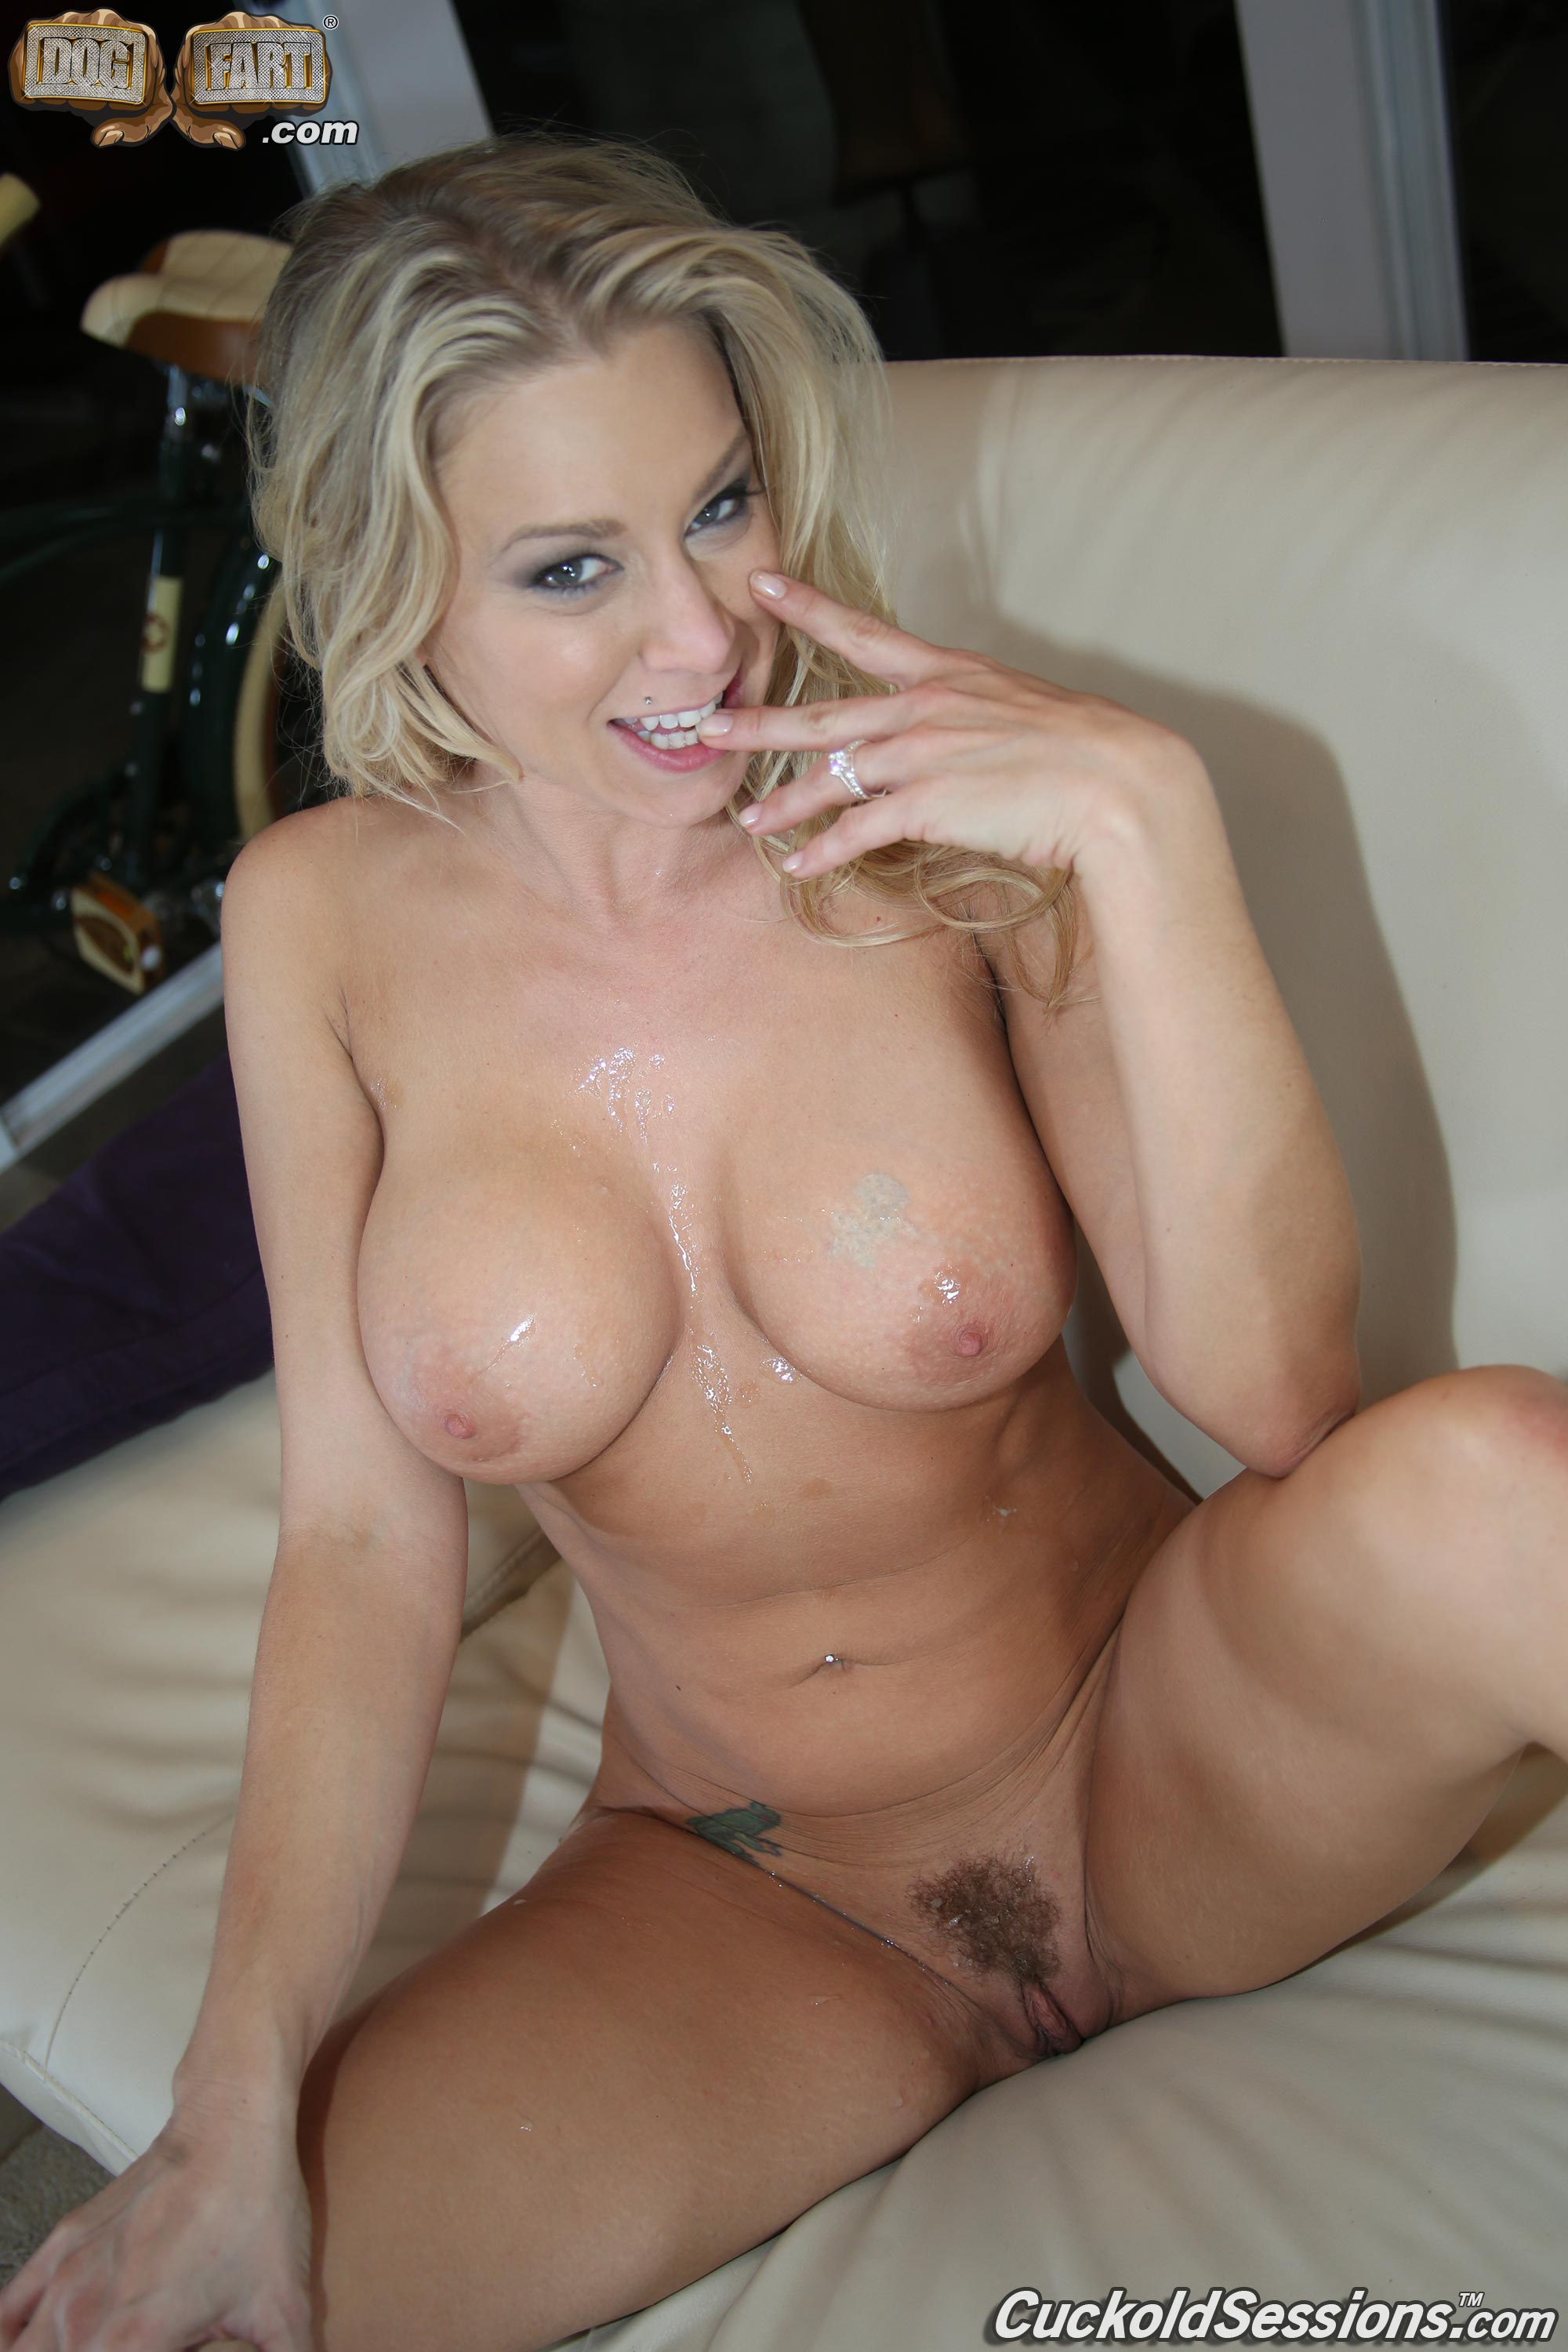 Katie Morgan - Katie Morgan - Cuckold Sessions | Picture (30)